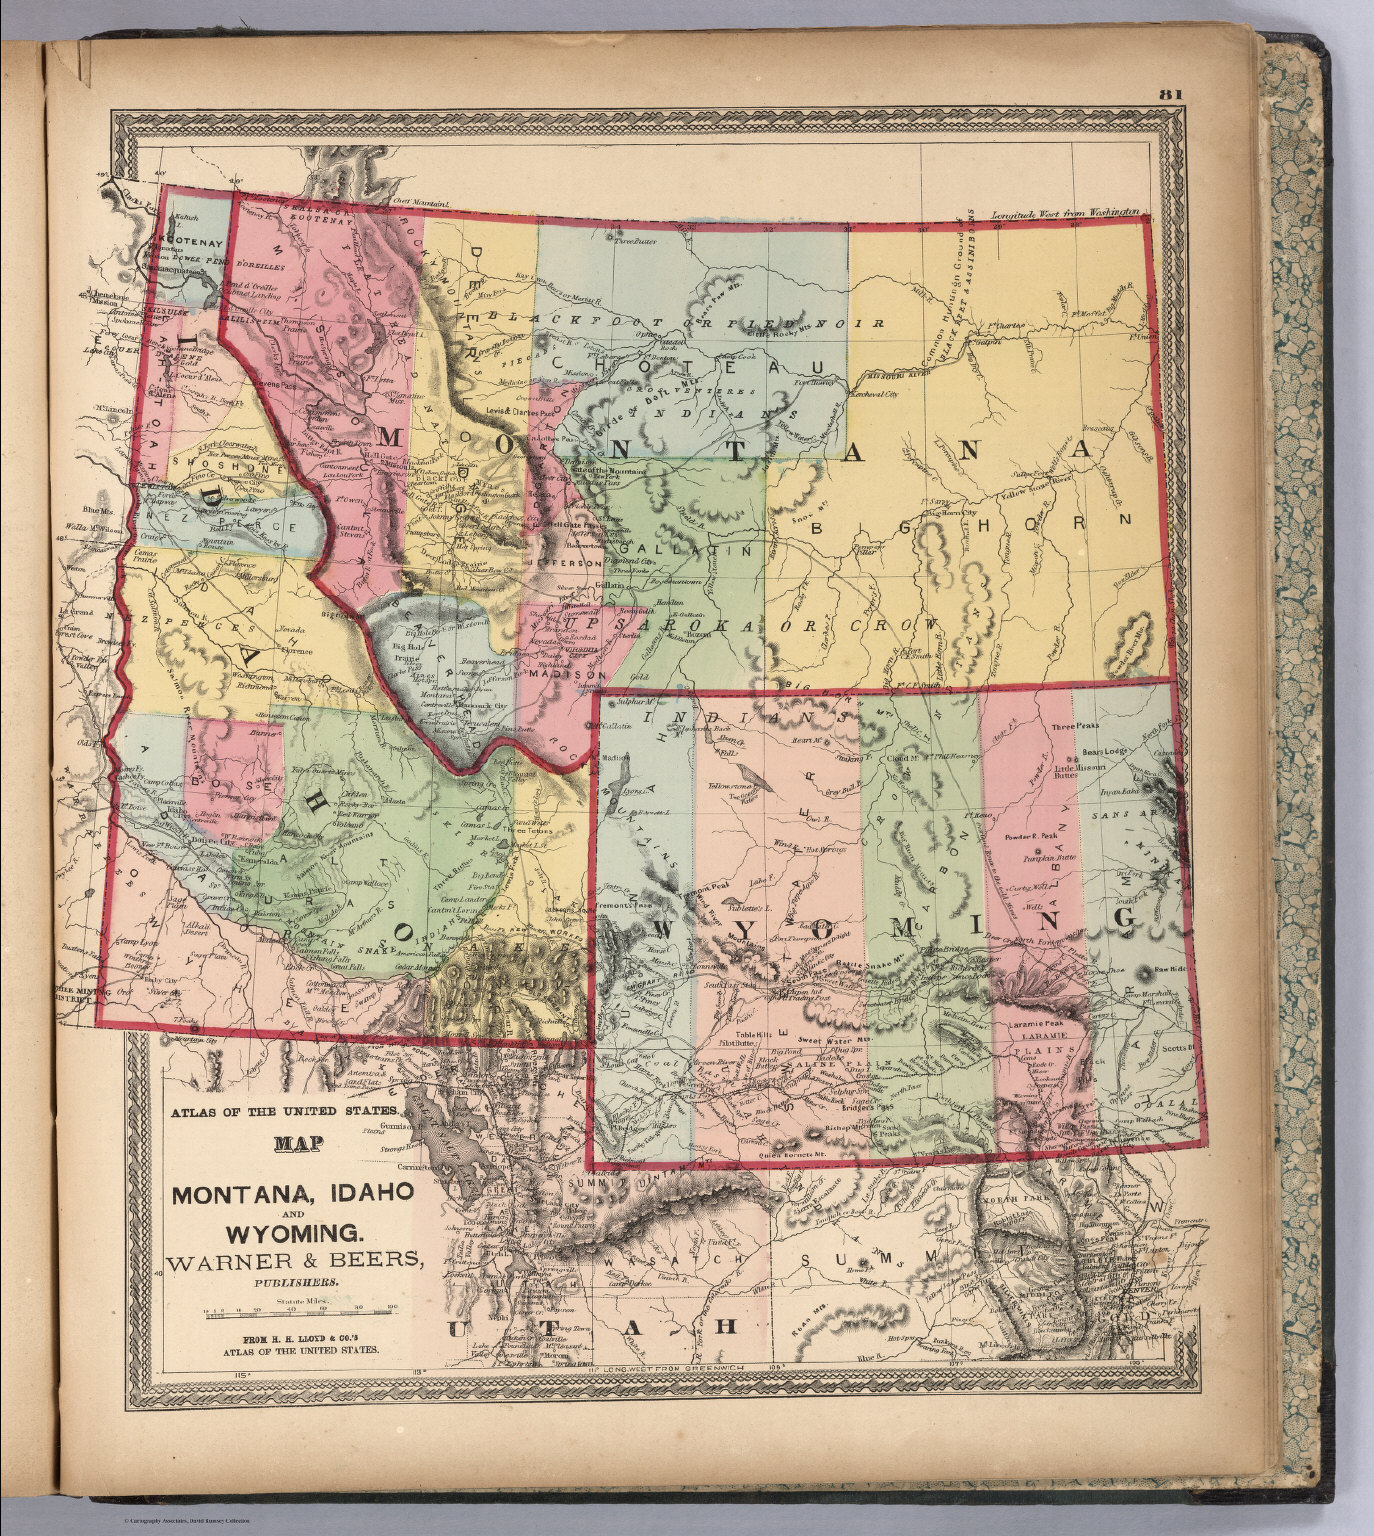 Montana Idaho And Wyoming David Rumsey Historical Map Collection - Map of montana and wyoming